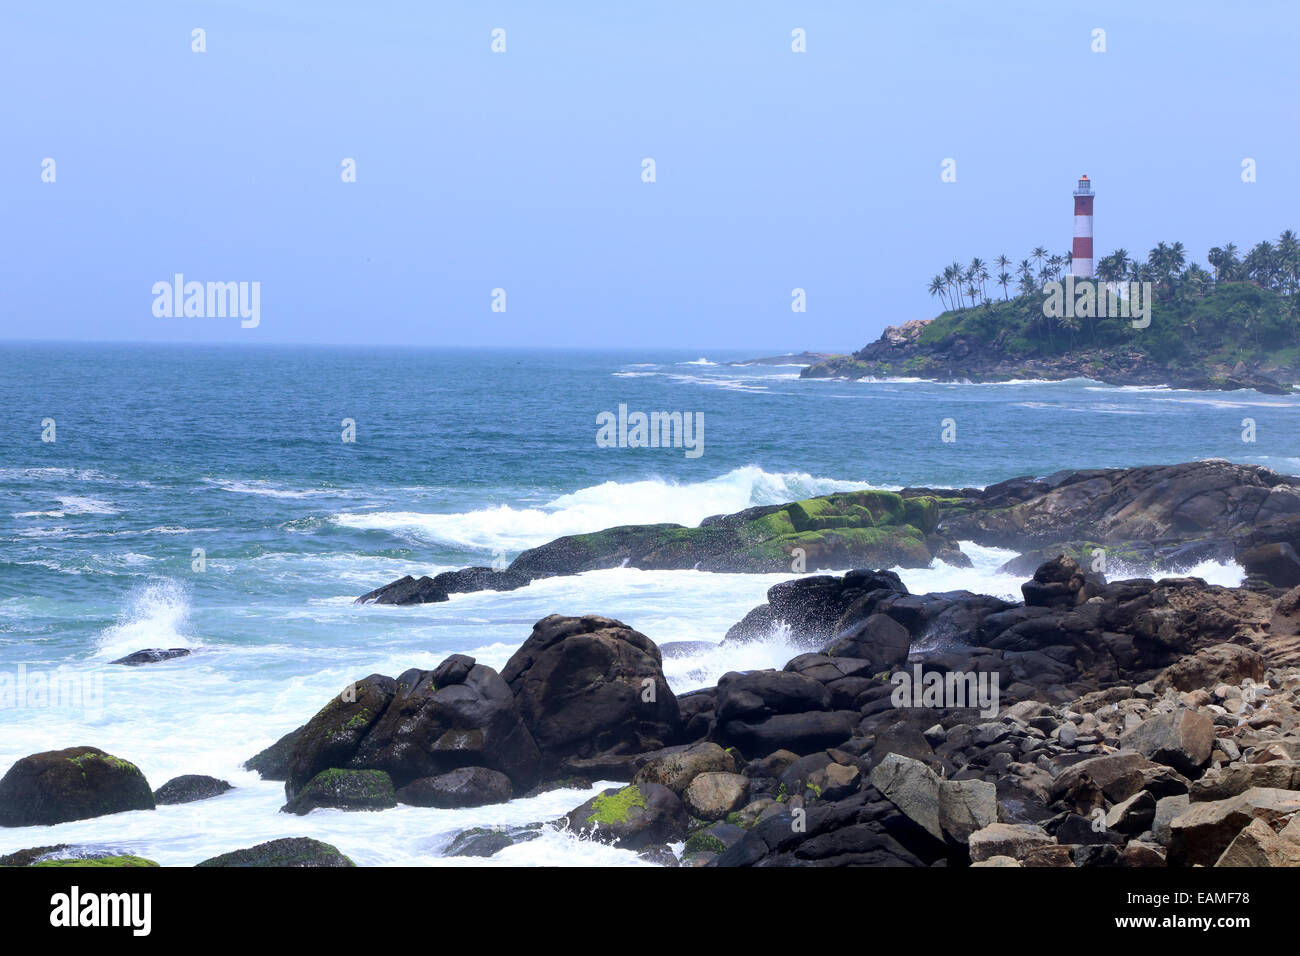 Vizhinjam, Thiruvananthapuram, Kerala, Indian, - Stock Image